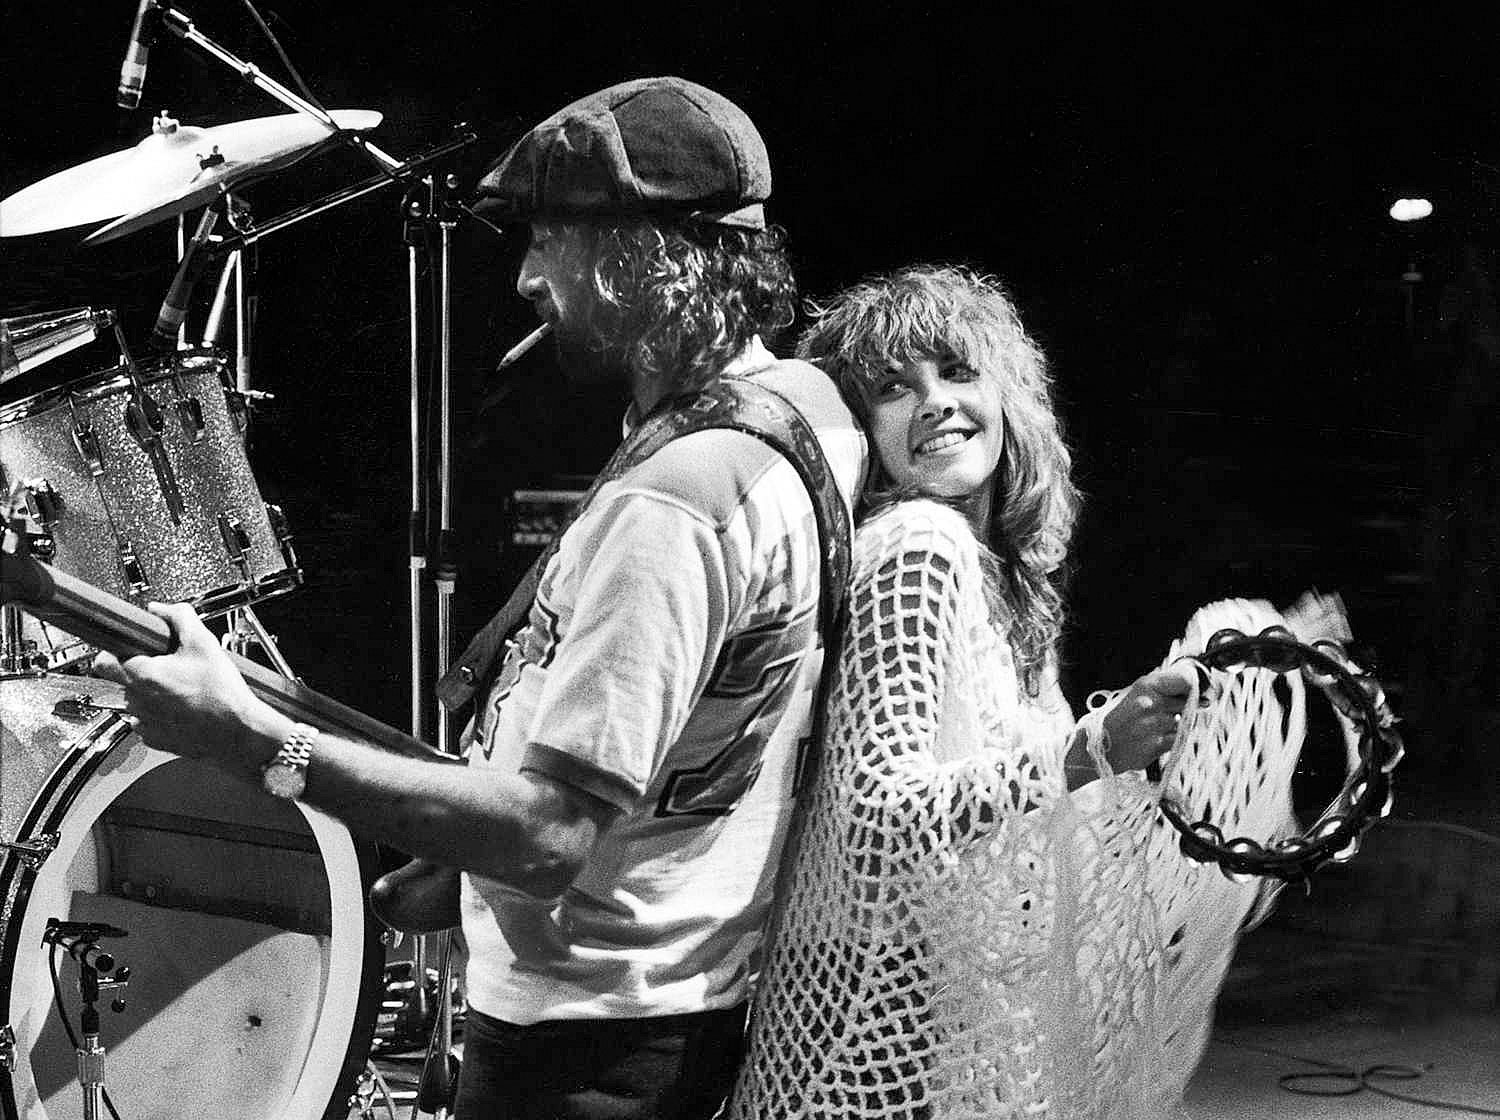 Mick Fleetwood We were cloaked in this crazy world